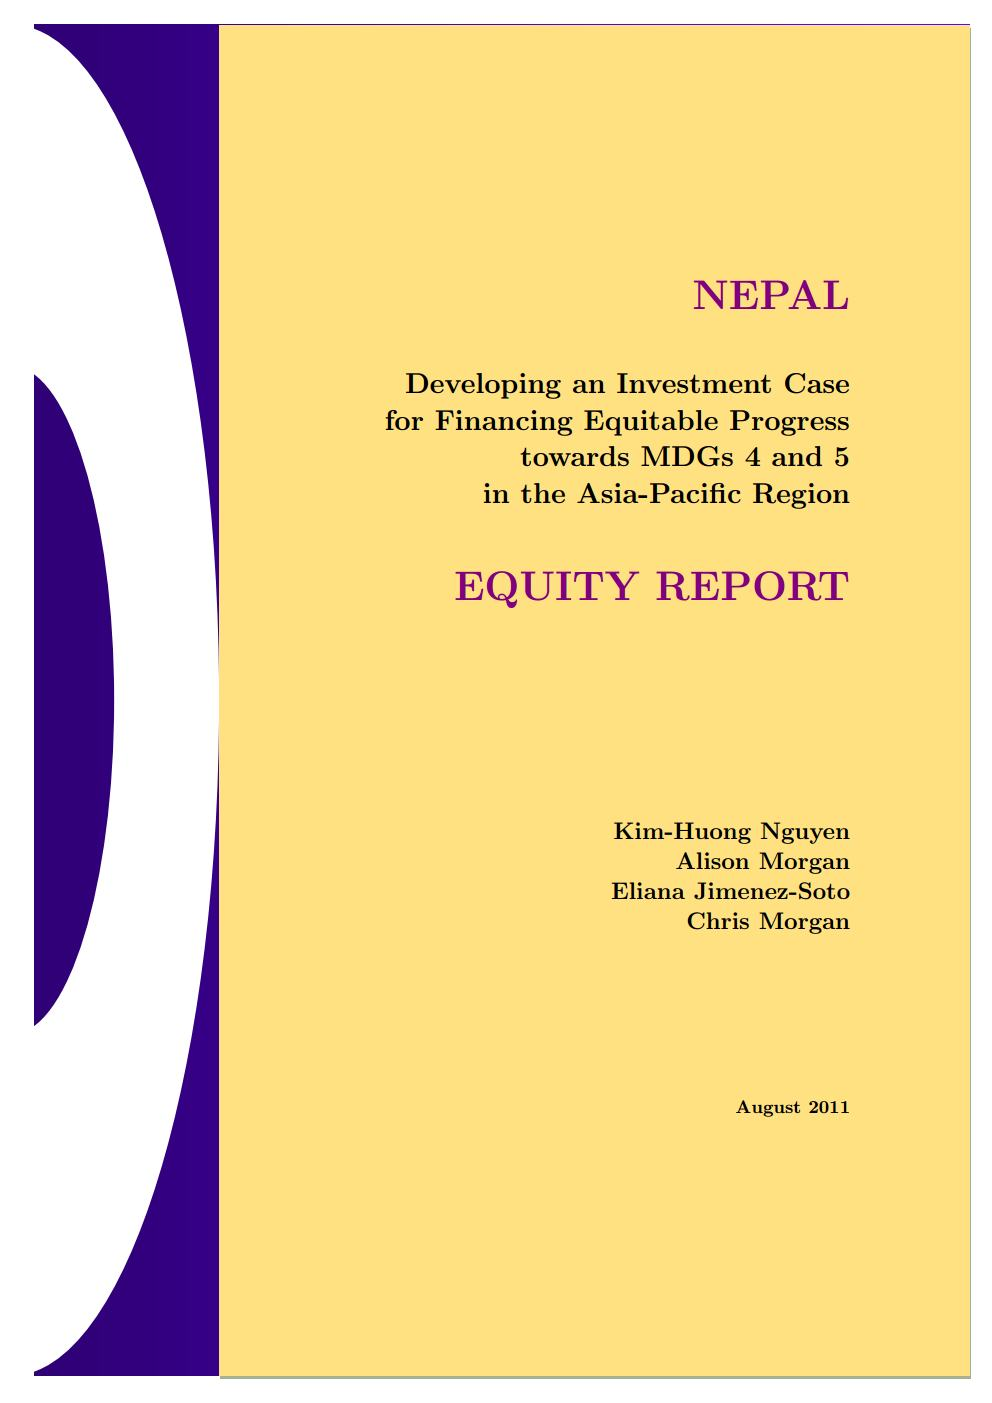 Nepal – Developing an Investment Case for Financing Equitable Progress towards MDG 4 and 5 in the Asia Region